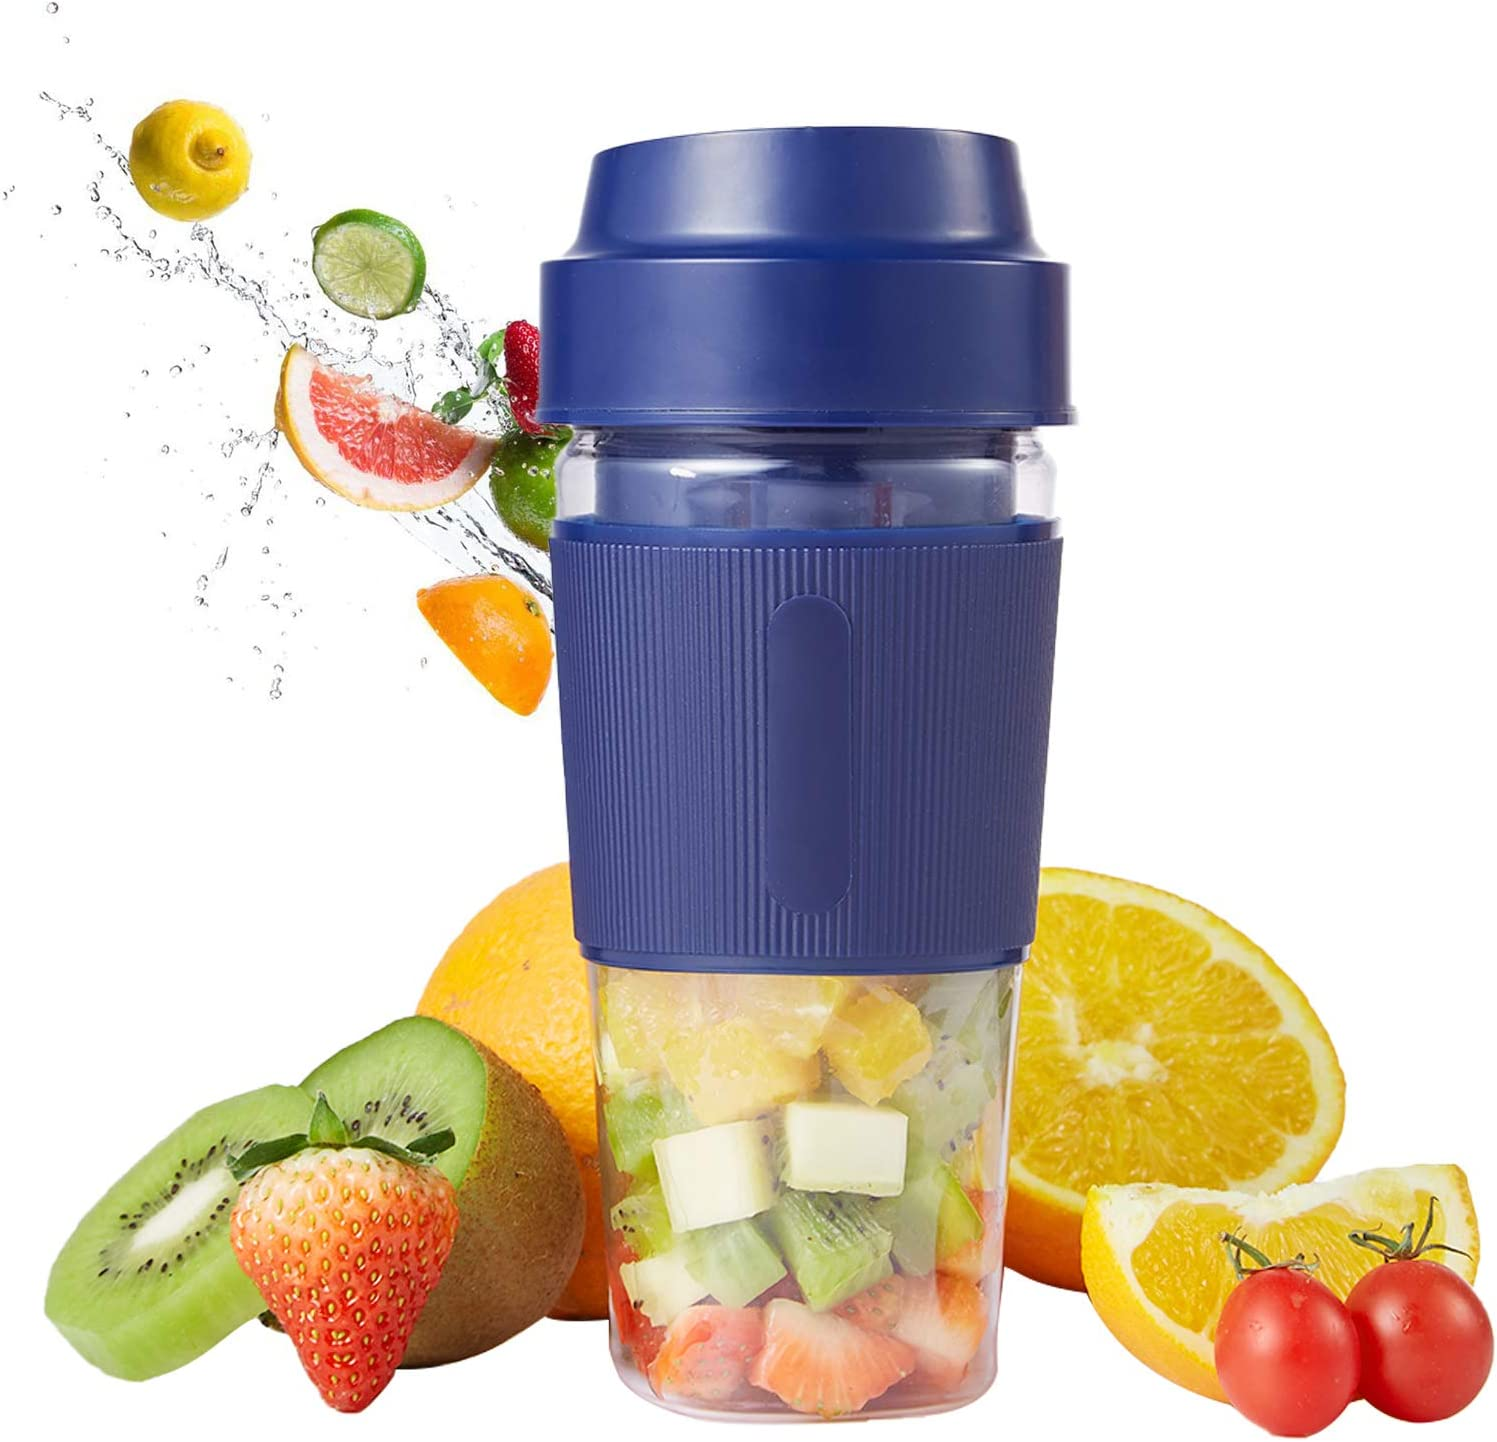 Portable Blender,Mini Personal Mixer Fruit Rechargeable with USB,Personal Size Blender for Smoothie, Fruit JuiceJuice Cup with Four Blades for Superb Mixing (Blue)